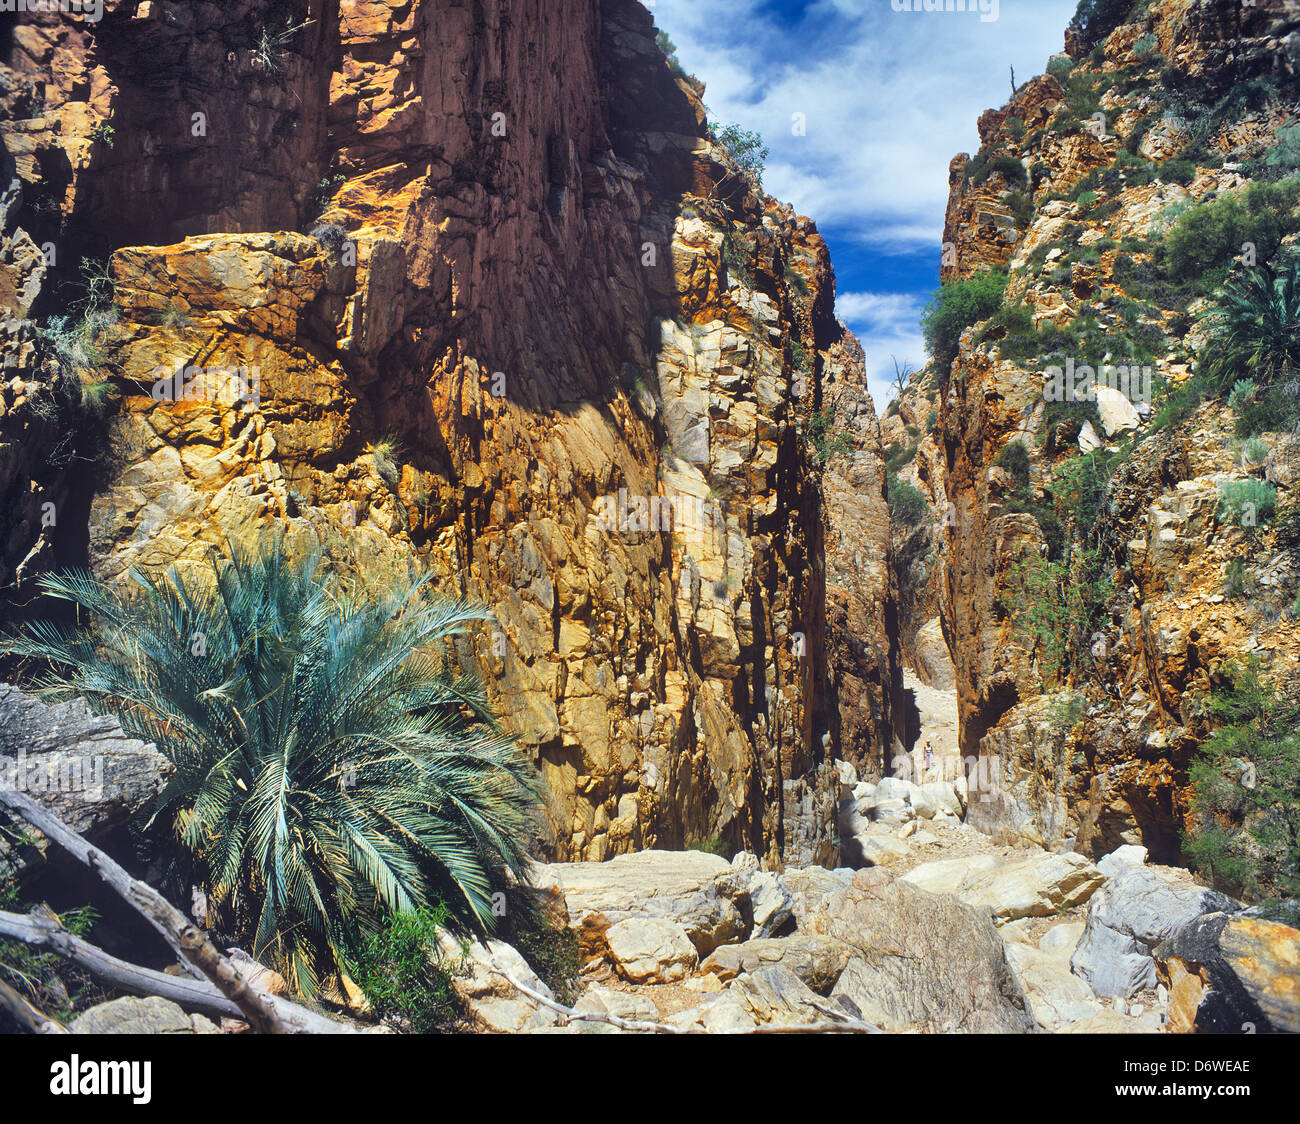 Australia, Northern Territory, Standley Chasm in the MacDonnell Ranges - Stock Image